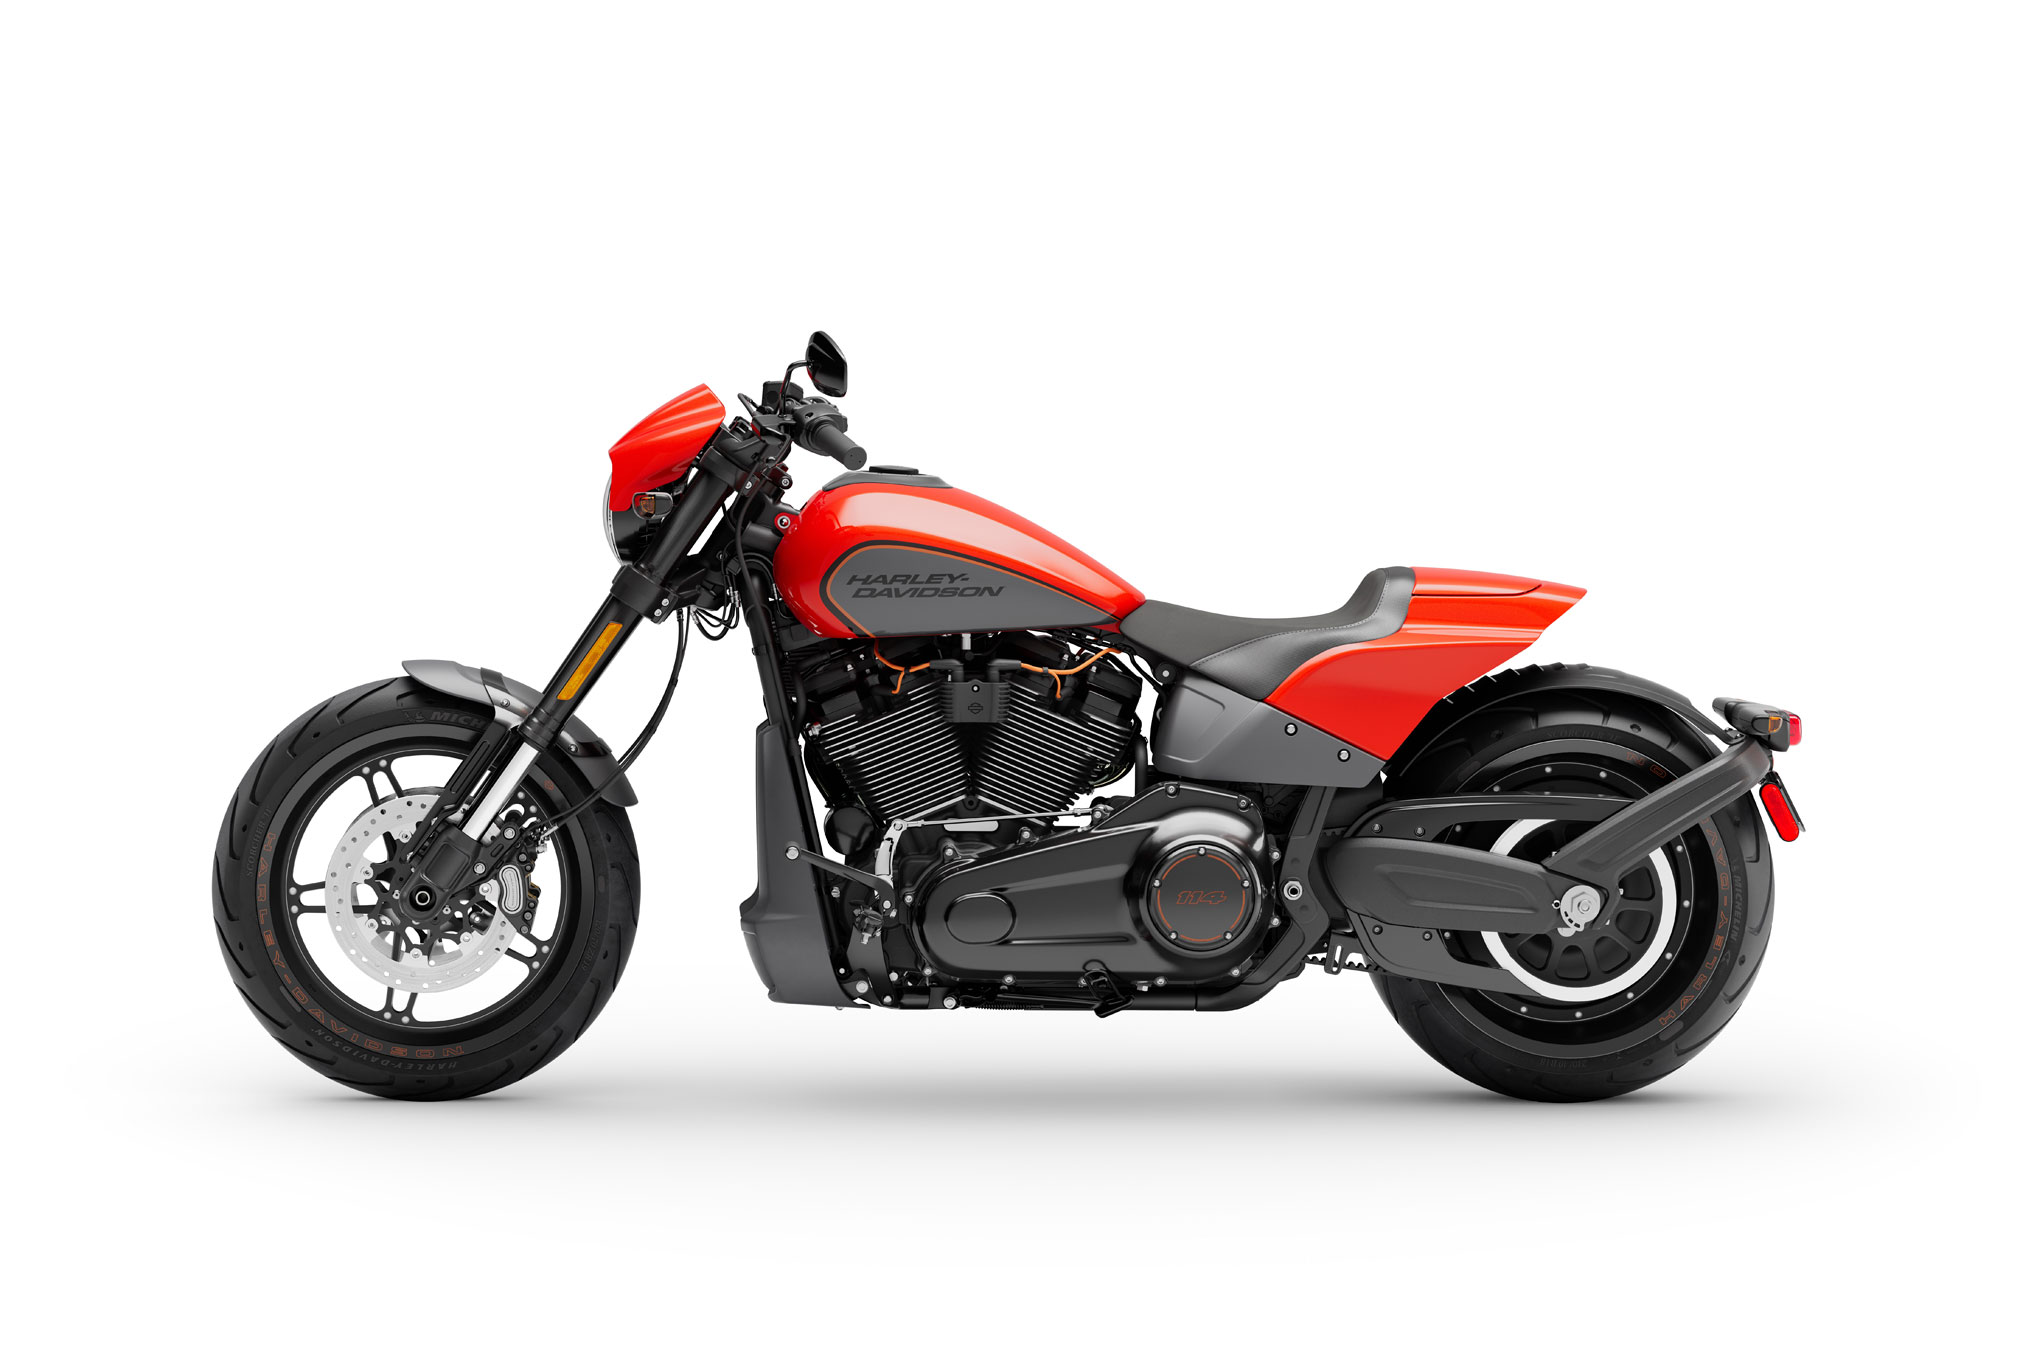 2020 Harley-Davidson Softail FXDR 114 Guide • Total Motorcycle